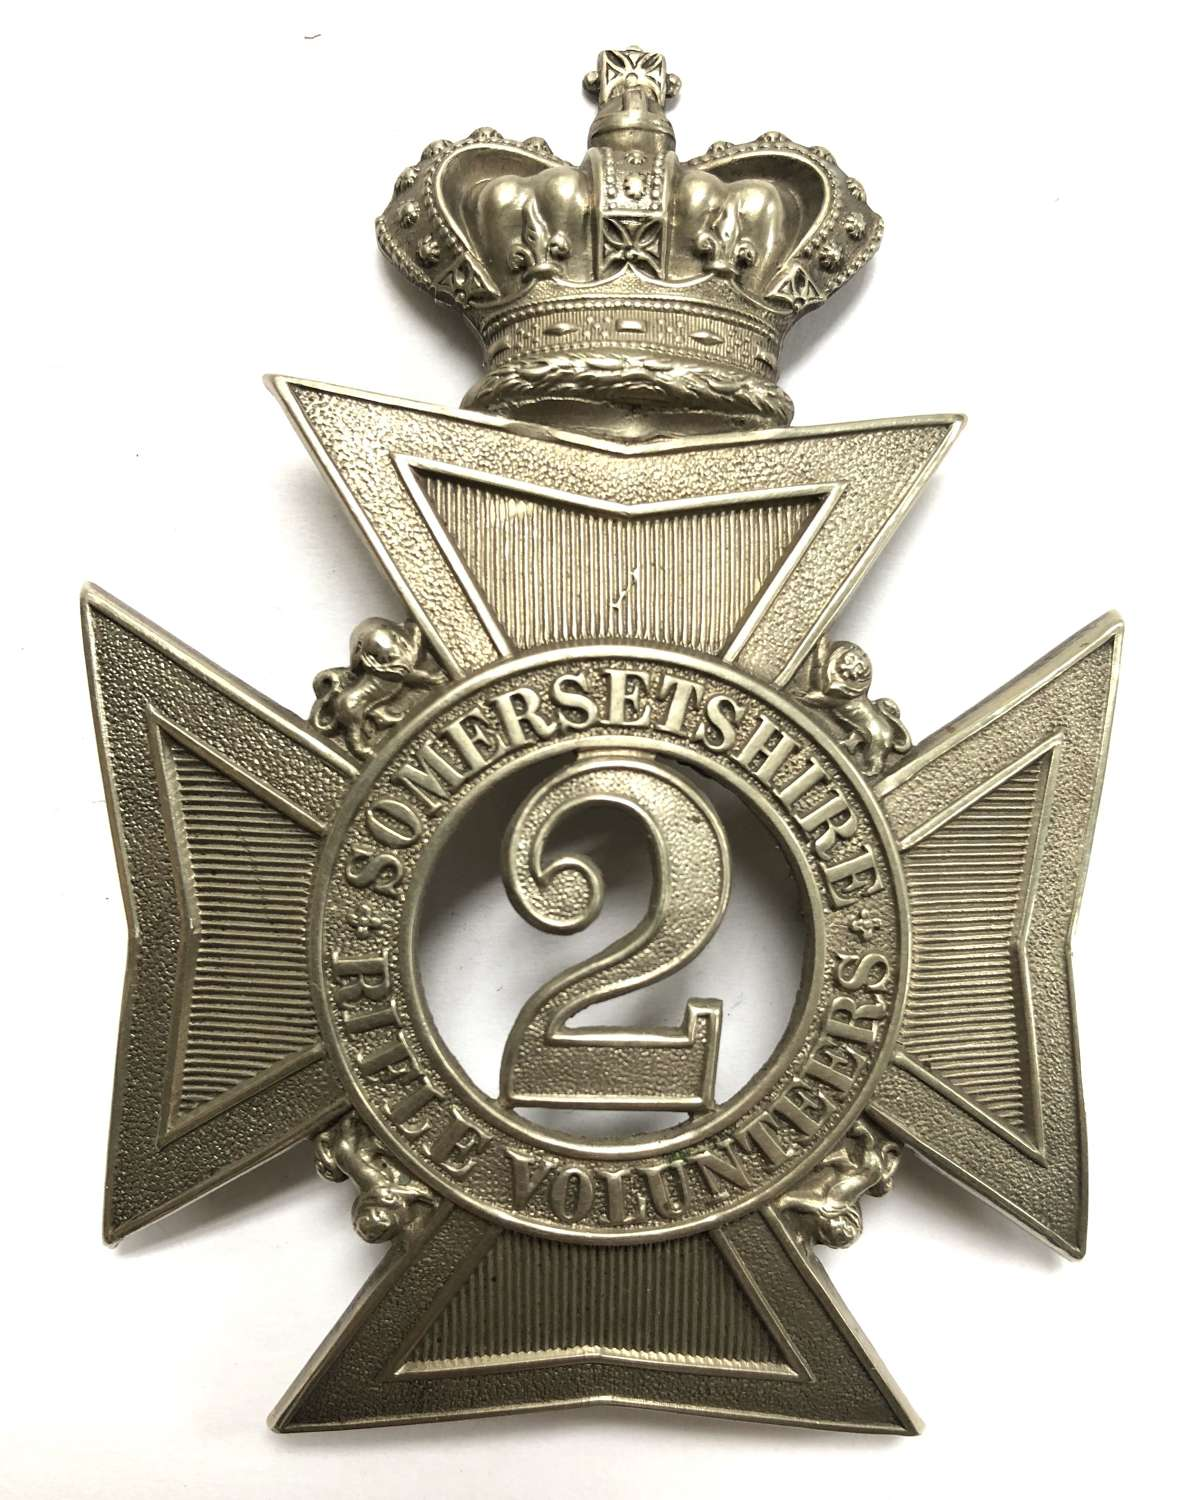 2nd Somersetshire Rifle Vos Victorian Officer's pouch belt plate